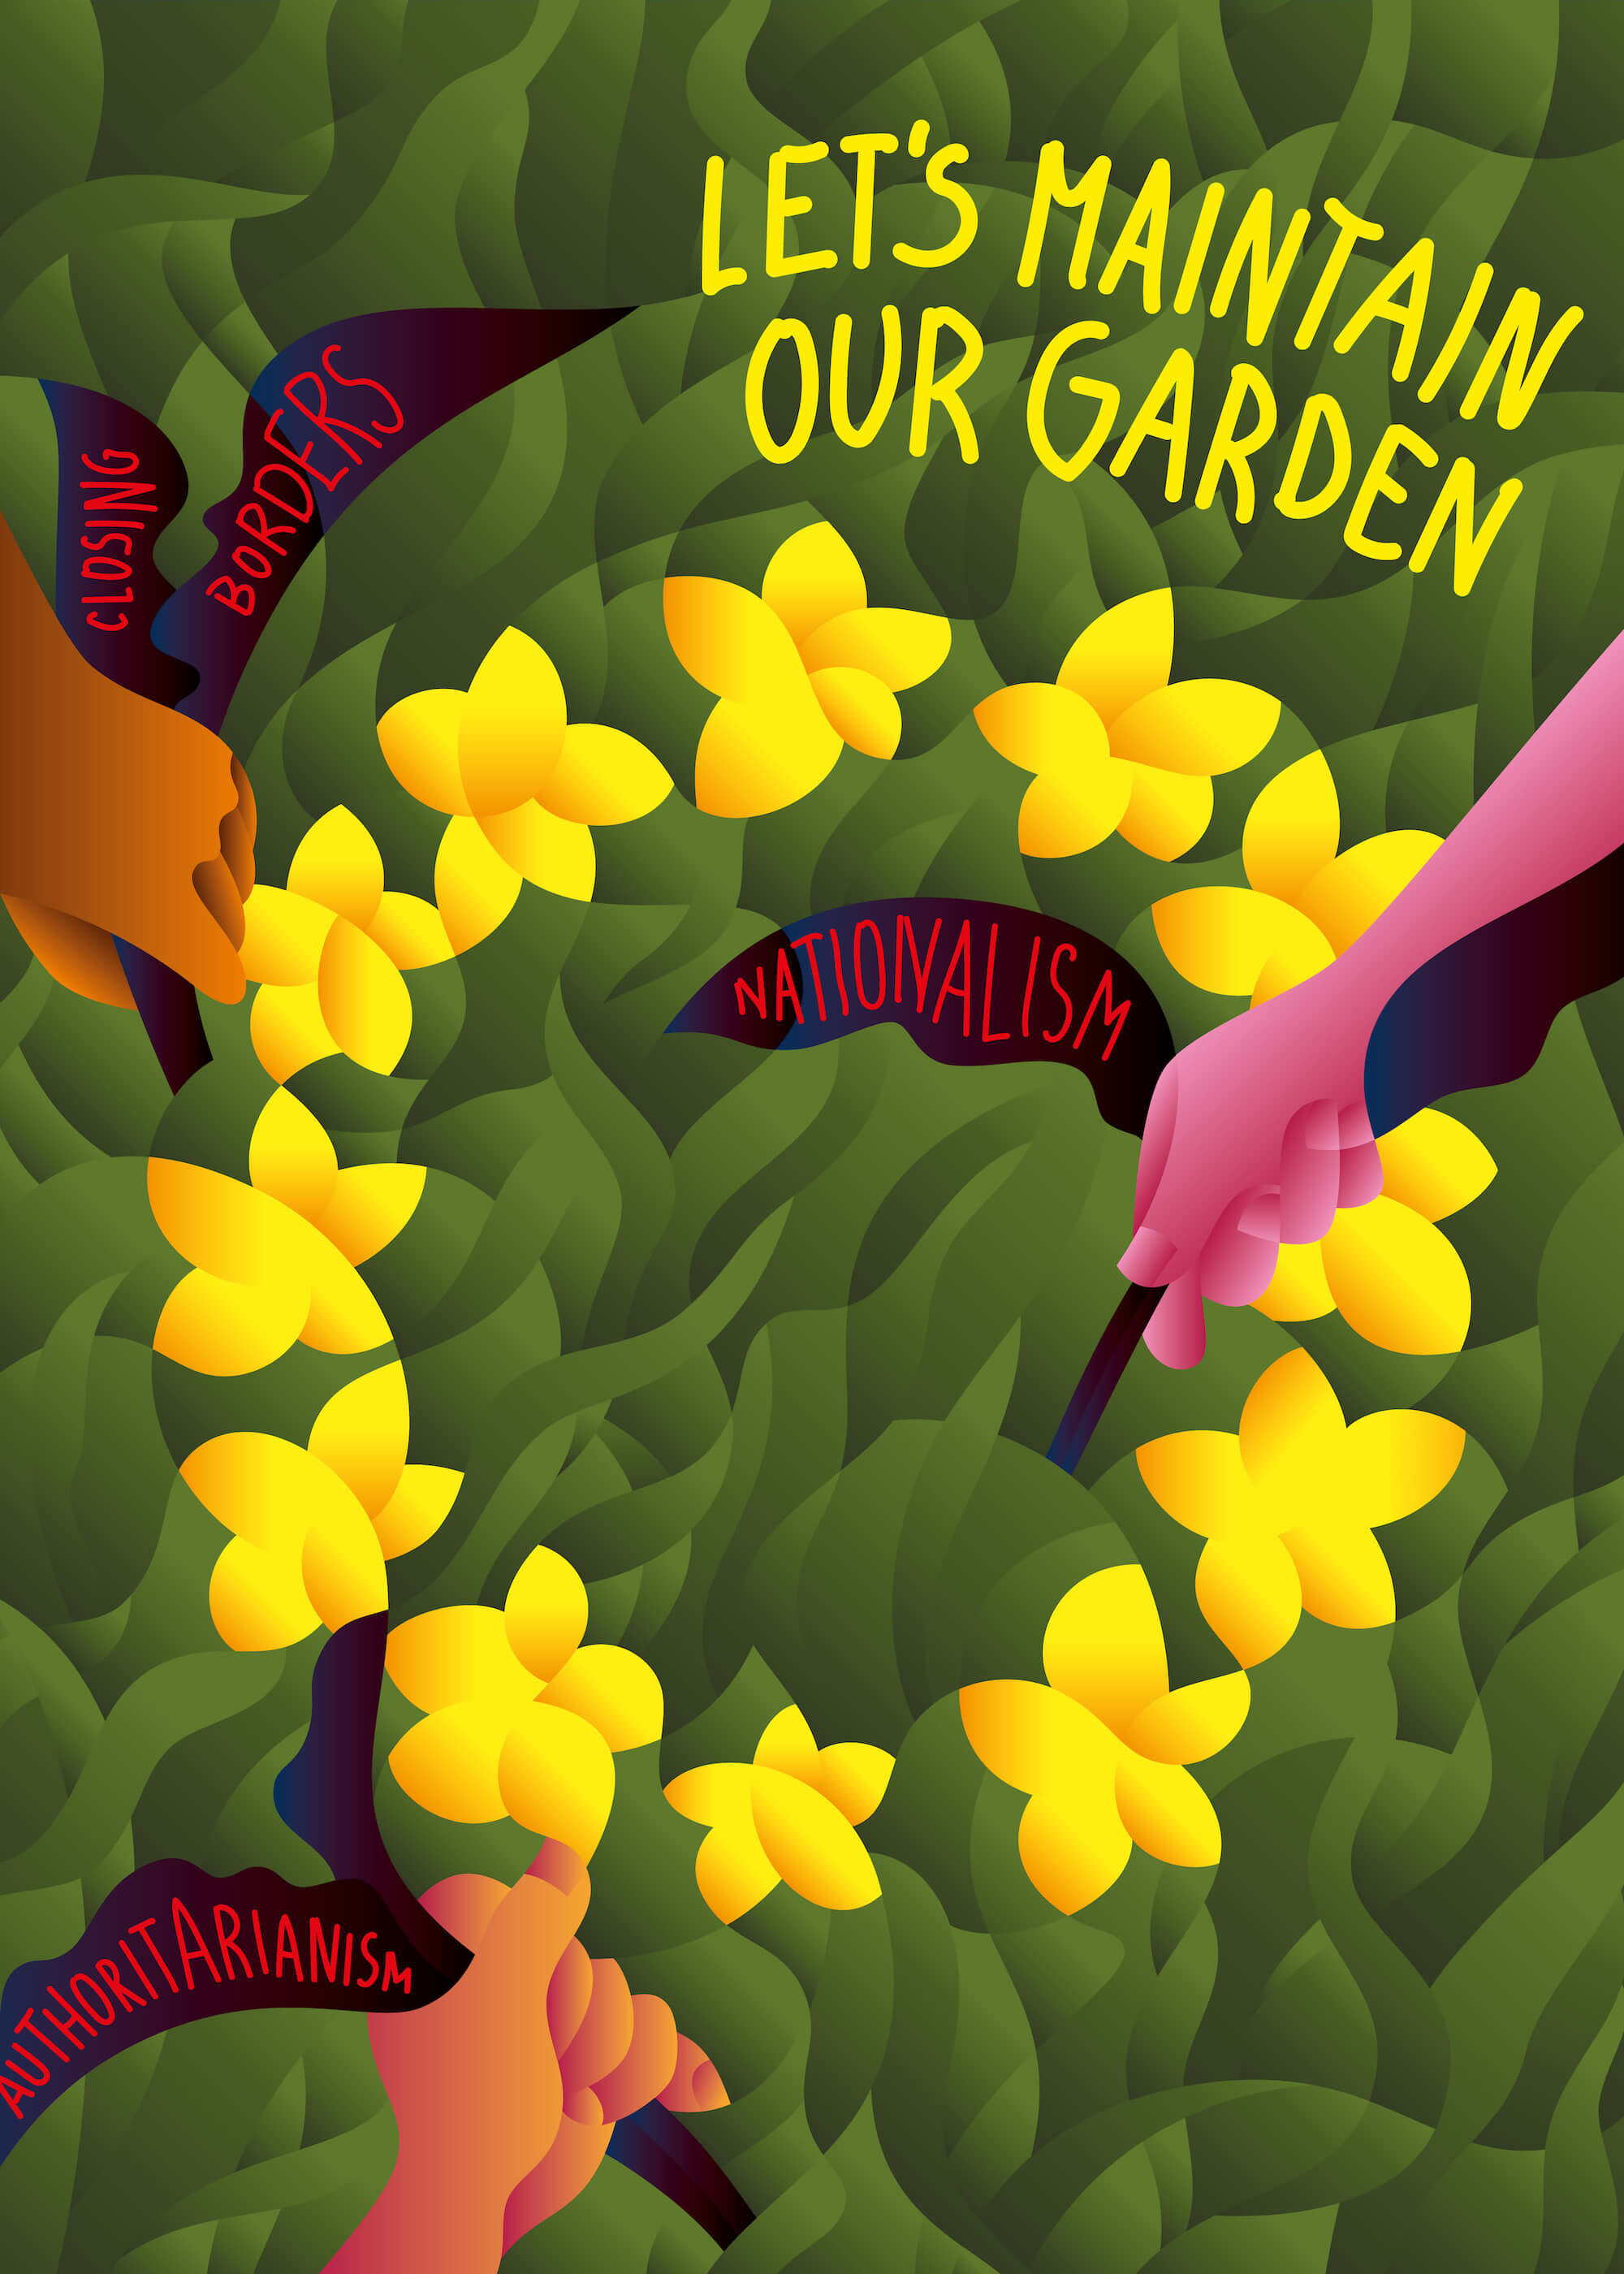 Let's Maintain Our Garden (series 2/2) main image